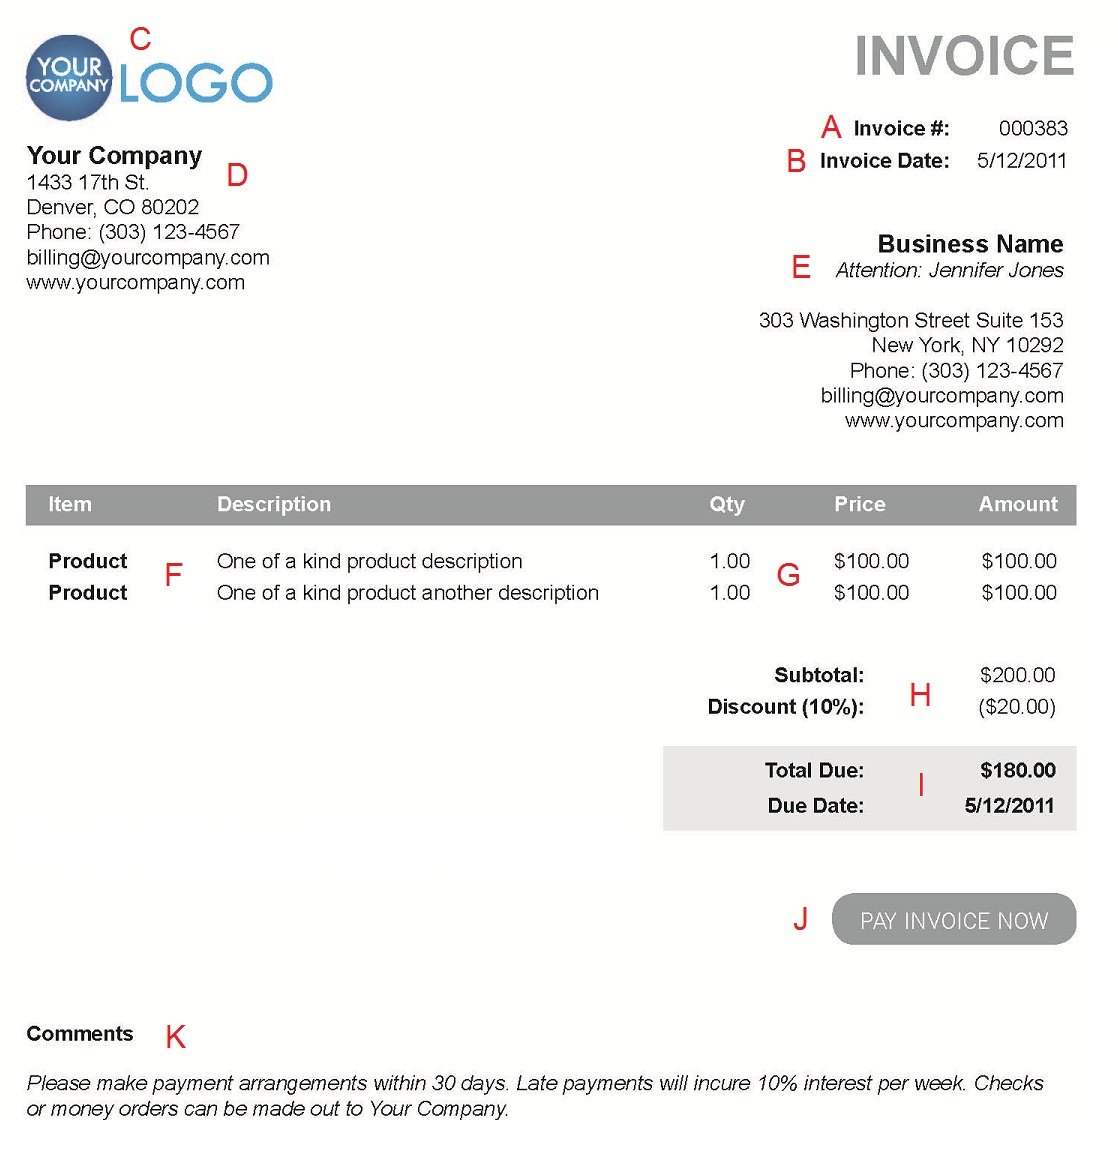 Aninsaneportraitus  Scenic The  Different Sections Of An Electronic Payment Invoice With Lovely A  With Easy On The Eye Free Printable Invoices Forms Also Law Firm Invoice Template In Addition Creating Invoice In Excel And Free Templates For Invoices Printable As Well As Small Business Invoice Templates Additionally Trucking Invoice Template Free From Paysimplecom With Aninsaneportraitus  Lovely The  Different Sections Of An Electronic Payment Invoice With Easy On The Eye A  And Scenic Free Printable Invoices Forms Also Law Firm Invoice Template In Addition Creating Invoice In Excel From Paysimplecom